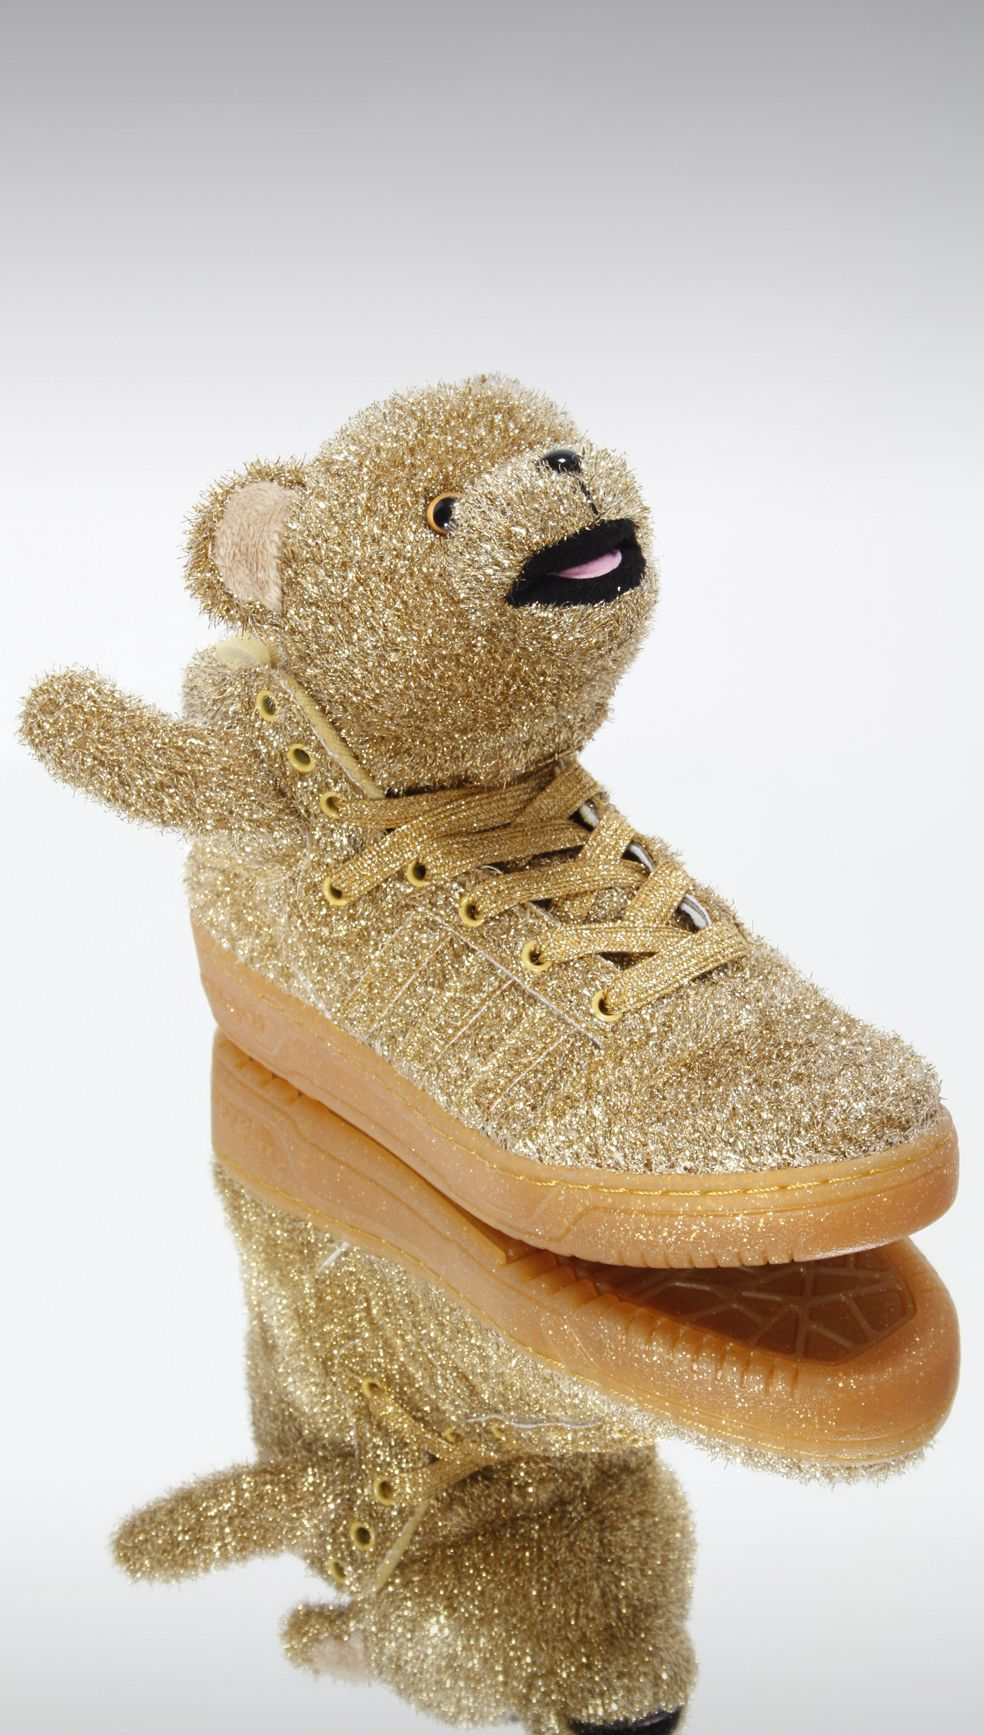 New Adidas x Jeremy Scott Bear trainers in Old Gold  amp  Silver just  dropped and 3dd5cfe83